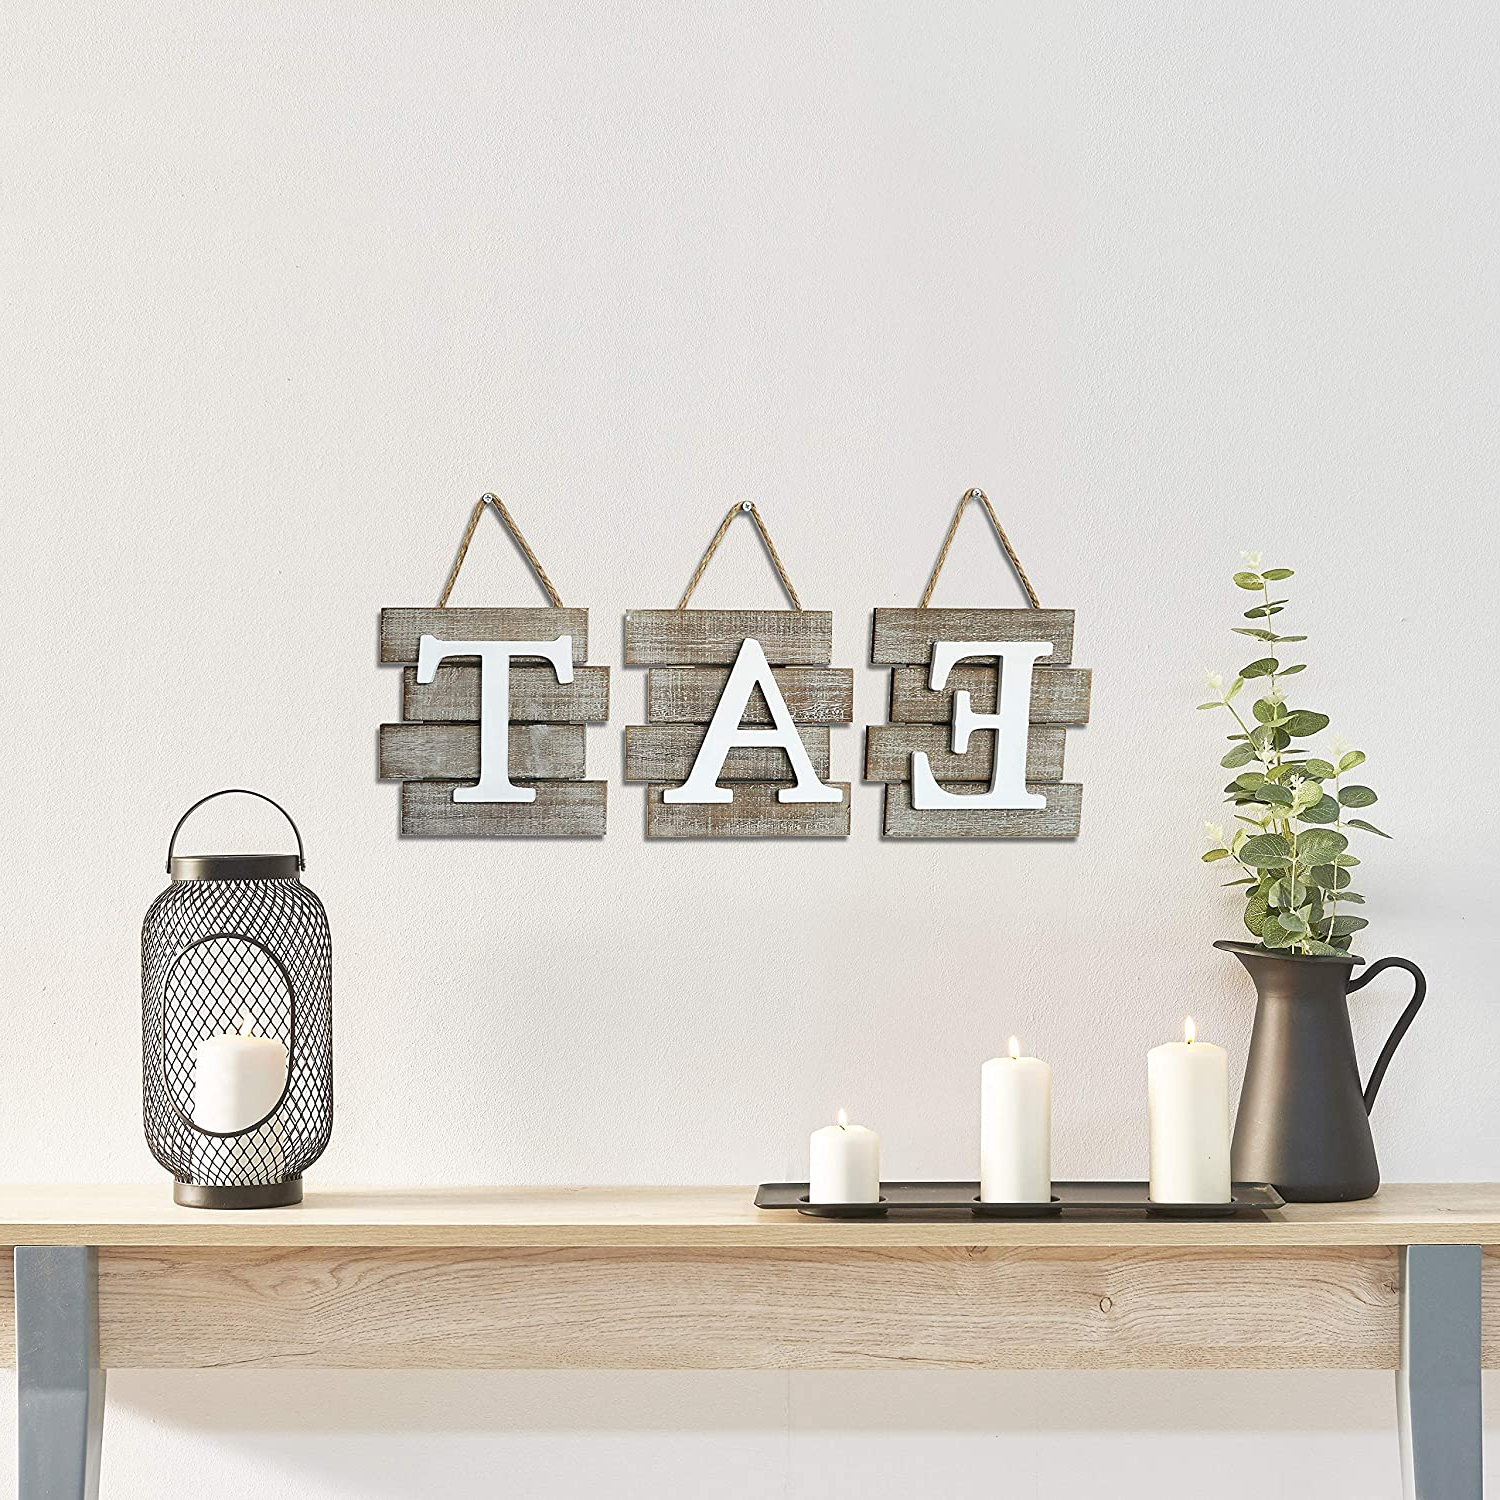 Eat Rustic Farmhouse Wood Wall Décor For Recent Barnyard Designs Eat Sign Wall Decor, Rustic Farmhouse Decoration For Kitchen And Home, Decorative Hanging Wooden Letters, Country Wall Art, (View 10 of 20)